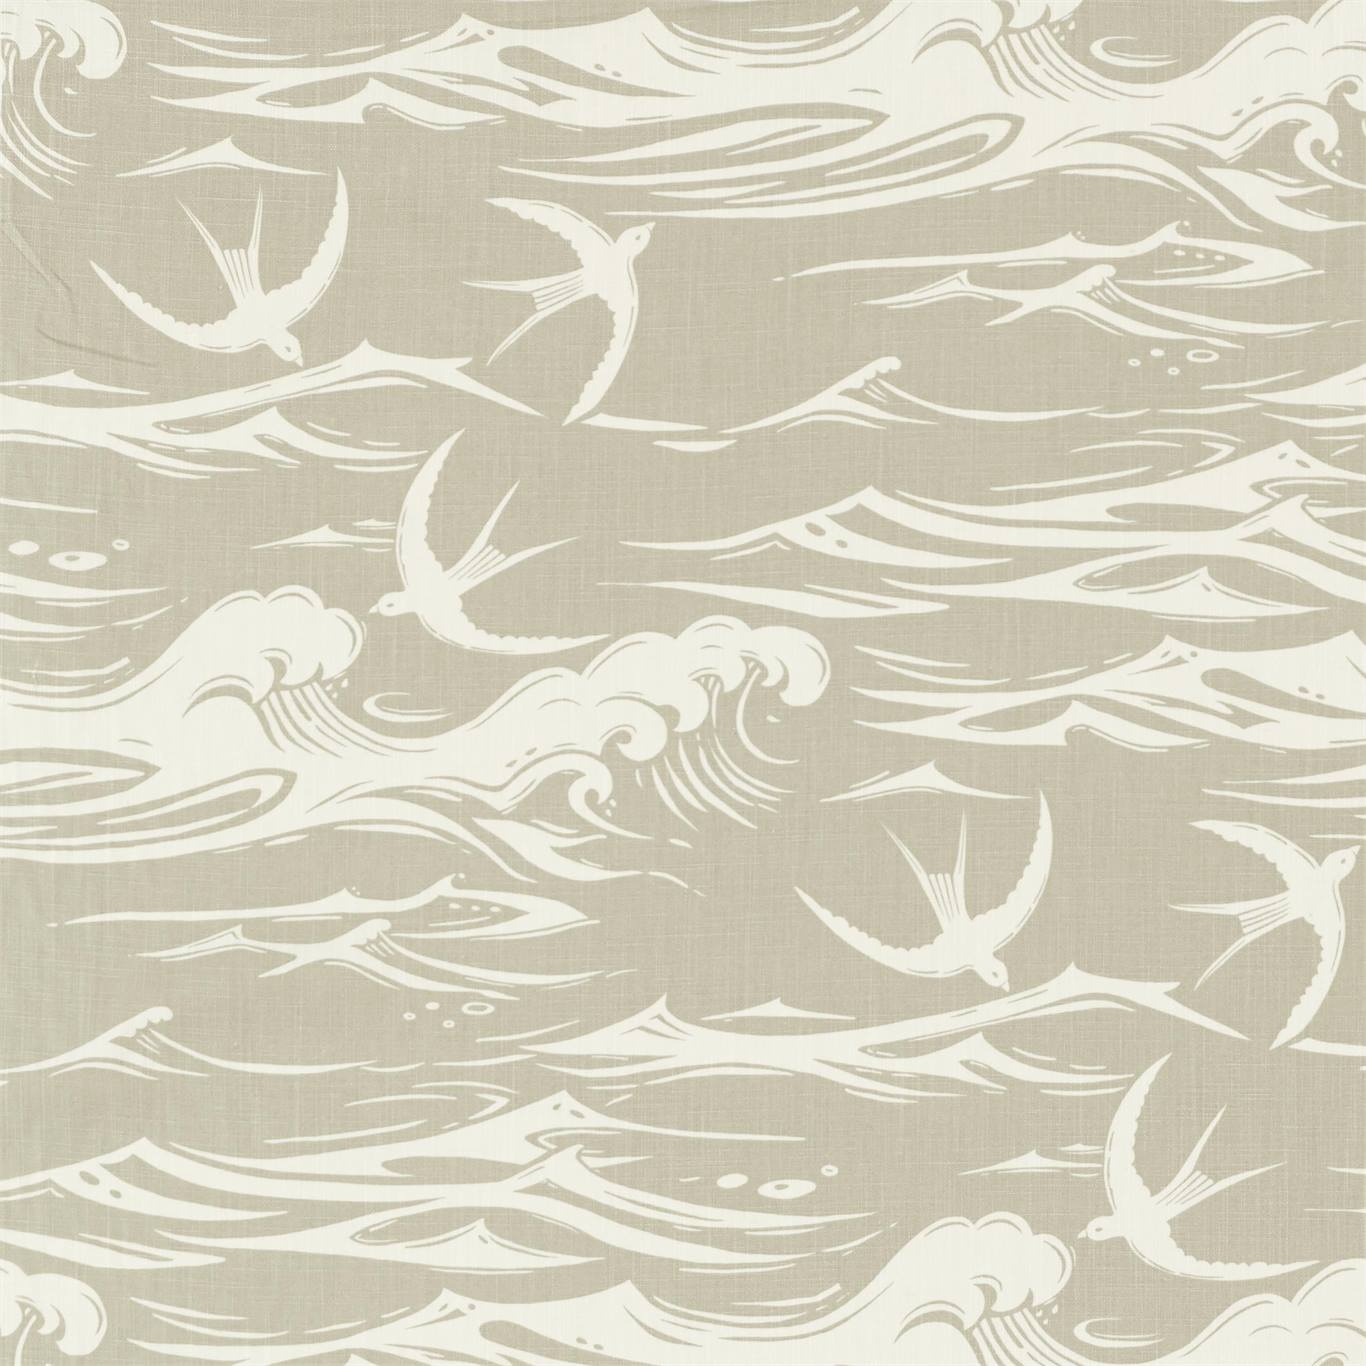 Image of Sanderson Swallows at Sea Linen Fabric 226742